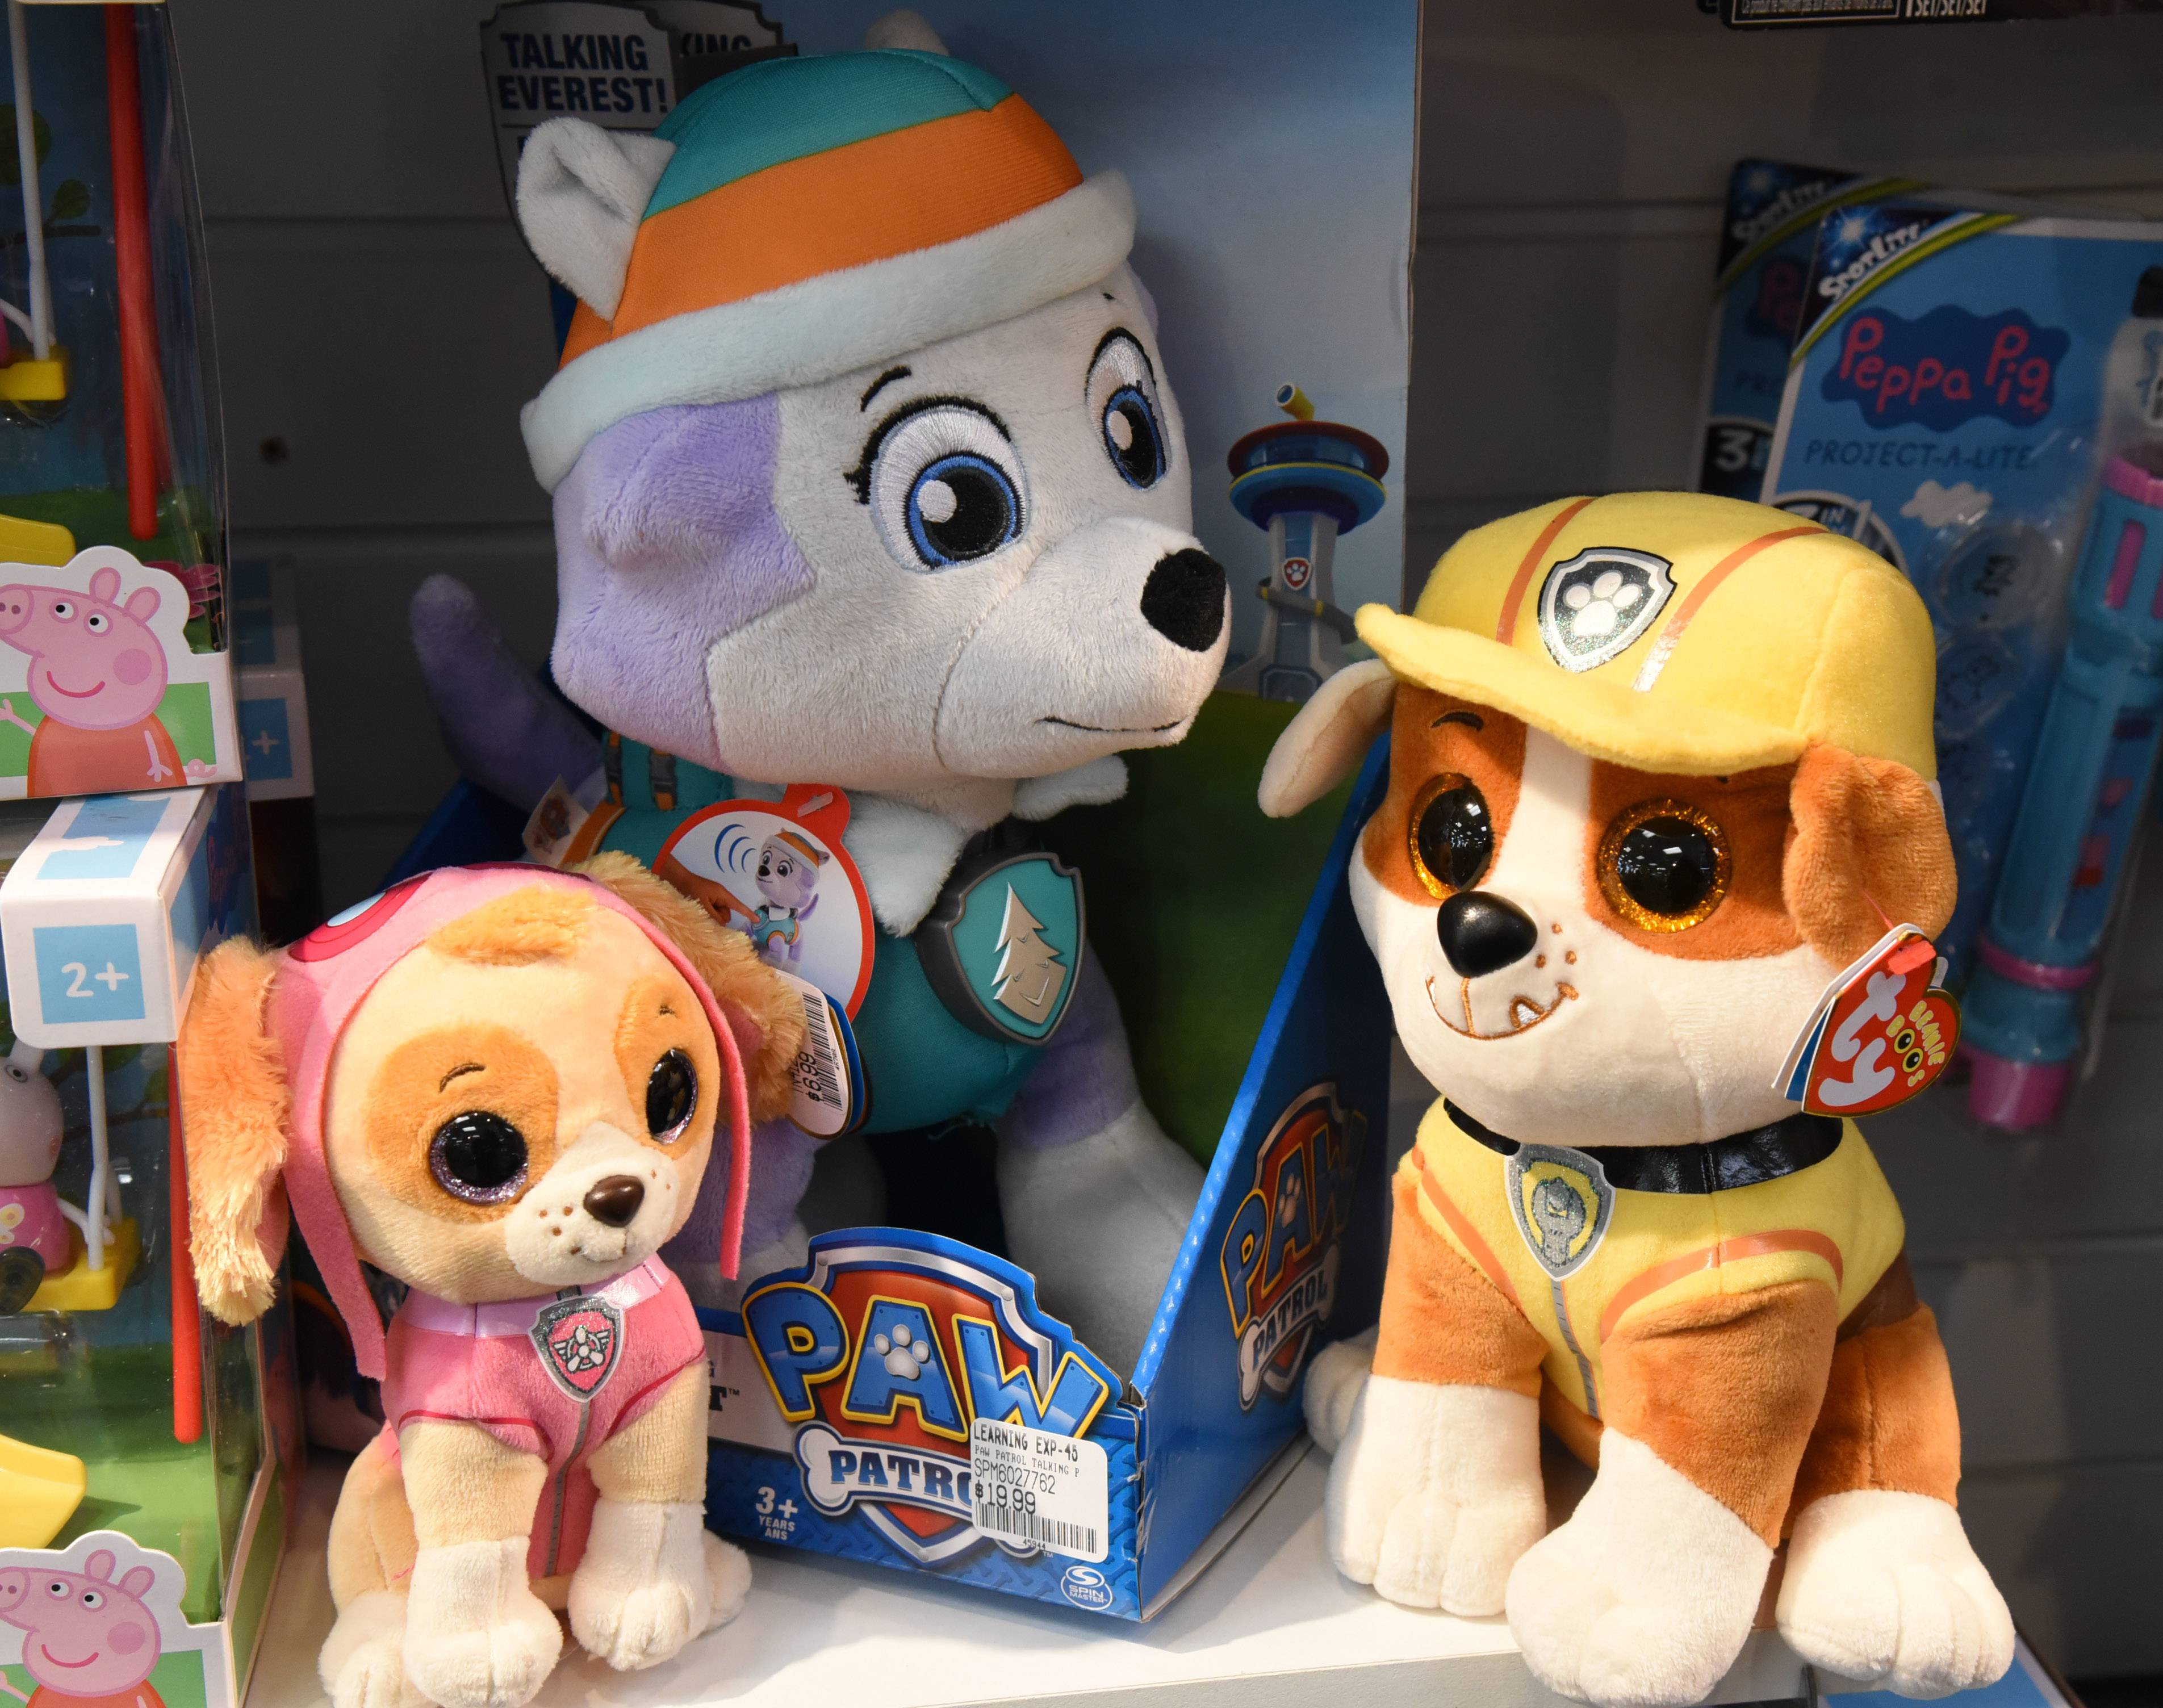 Paw Patrol items are a hot gift this season.